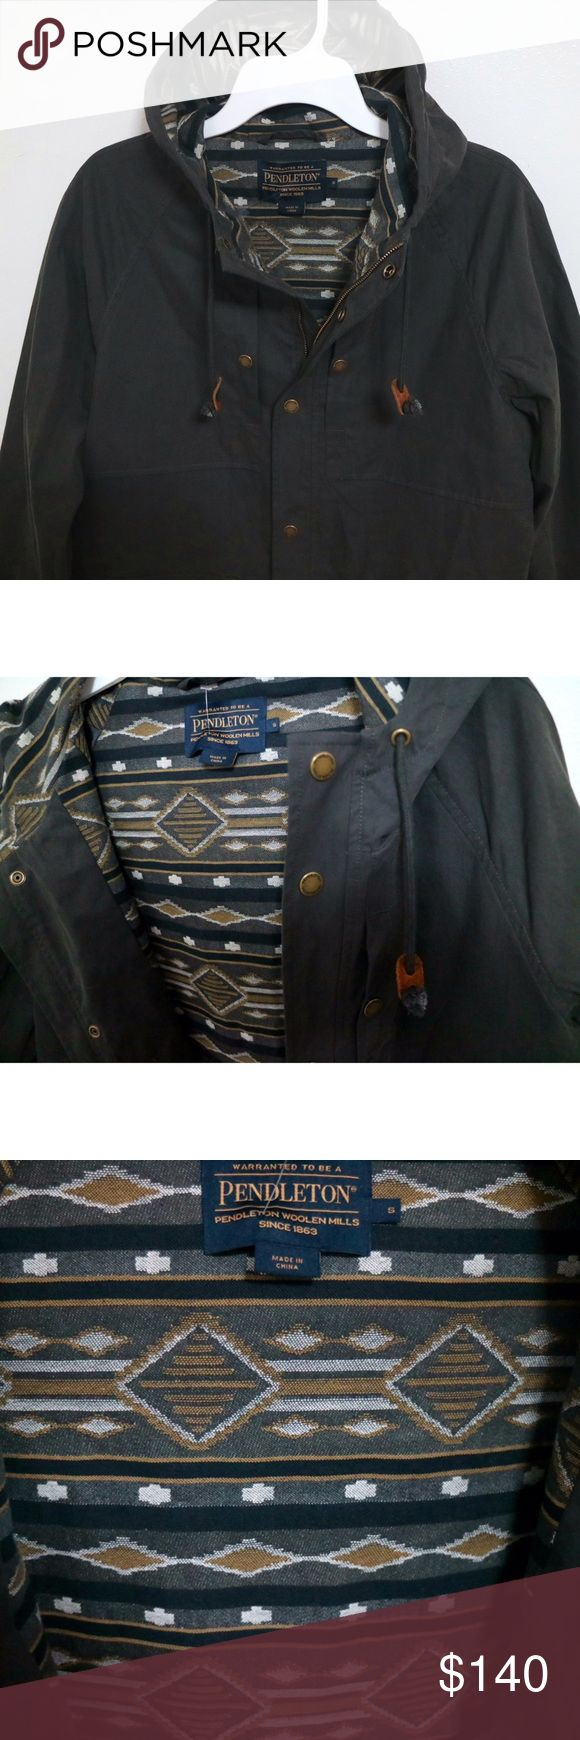 Pendleton Portland Collection Men's Parka Jacket Brand new with tags, men's size Small. This Pendleton Portland Collection Men's Parka Jacket is lined with an iconic tribal Pendleton print. Even the hoodie is lined! Comes in grey. This is an additional pictures listing. Please visit 1st listing for more pics and information! Retails for $279! Pendleton Jackets & Coats